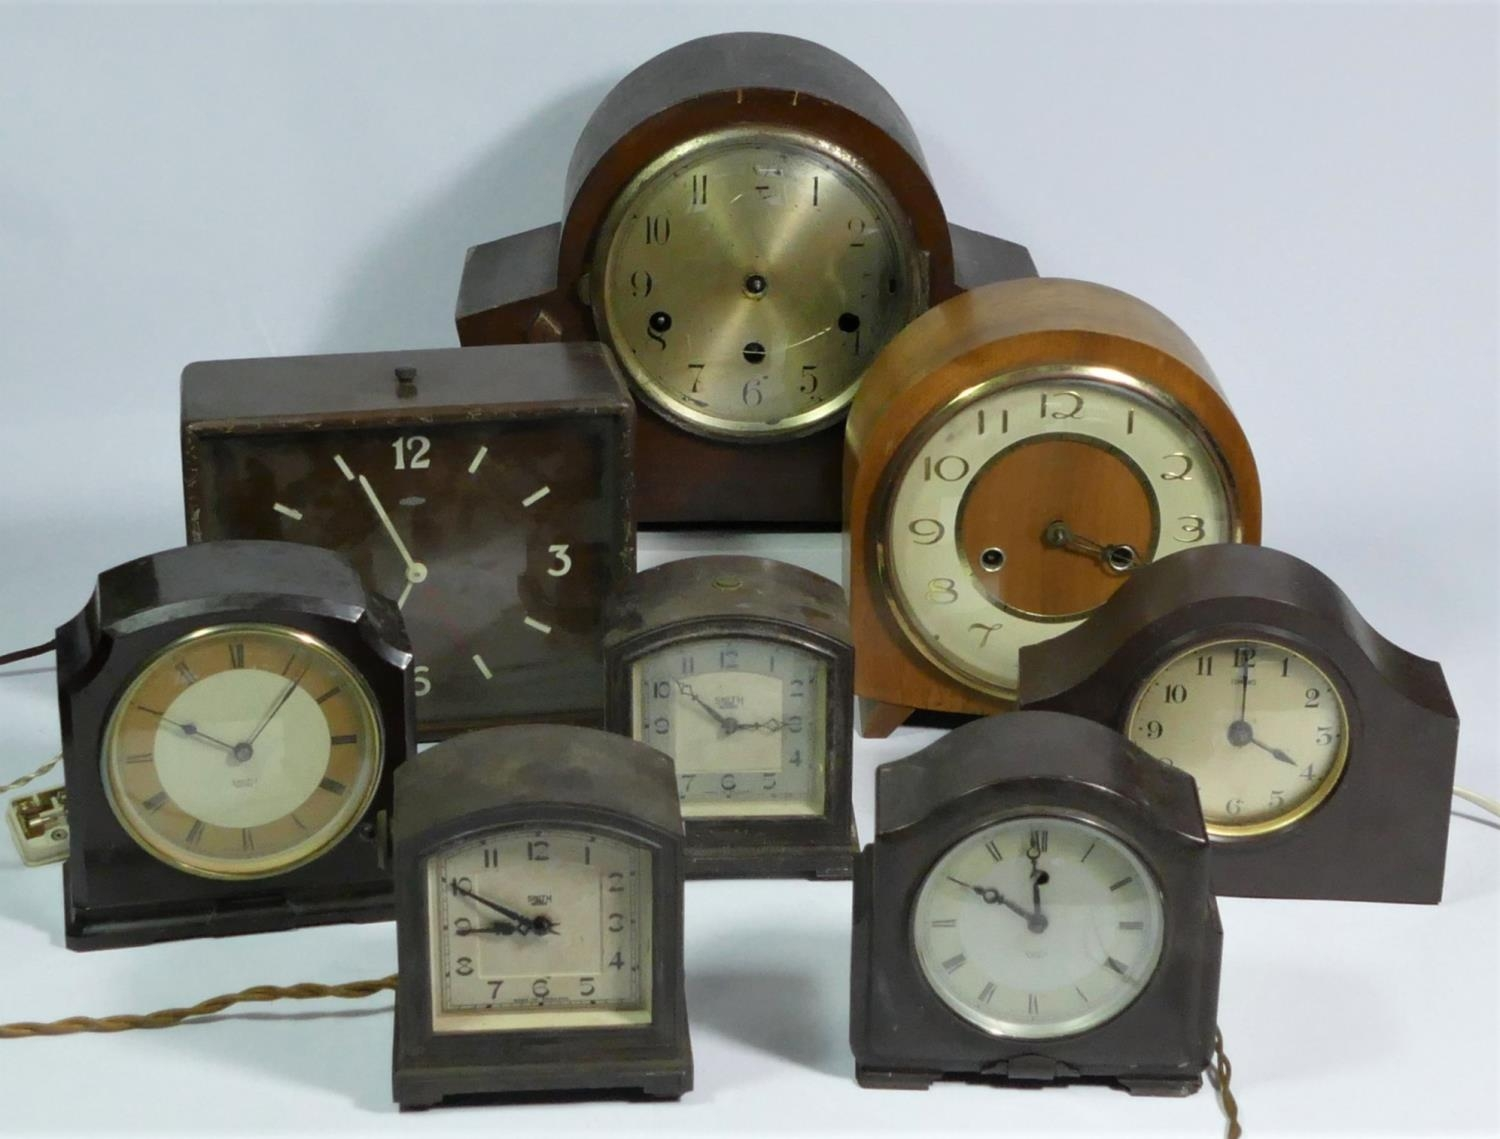 A collection of clocks to include, a Metamec electric clock, a Smiths electric clock, together